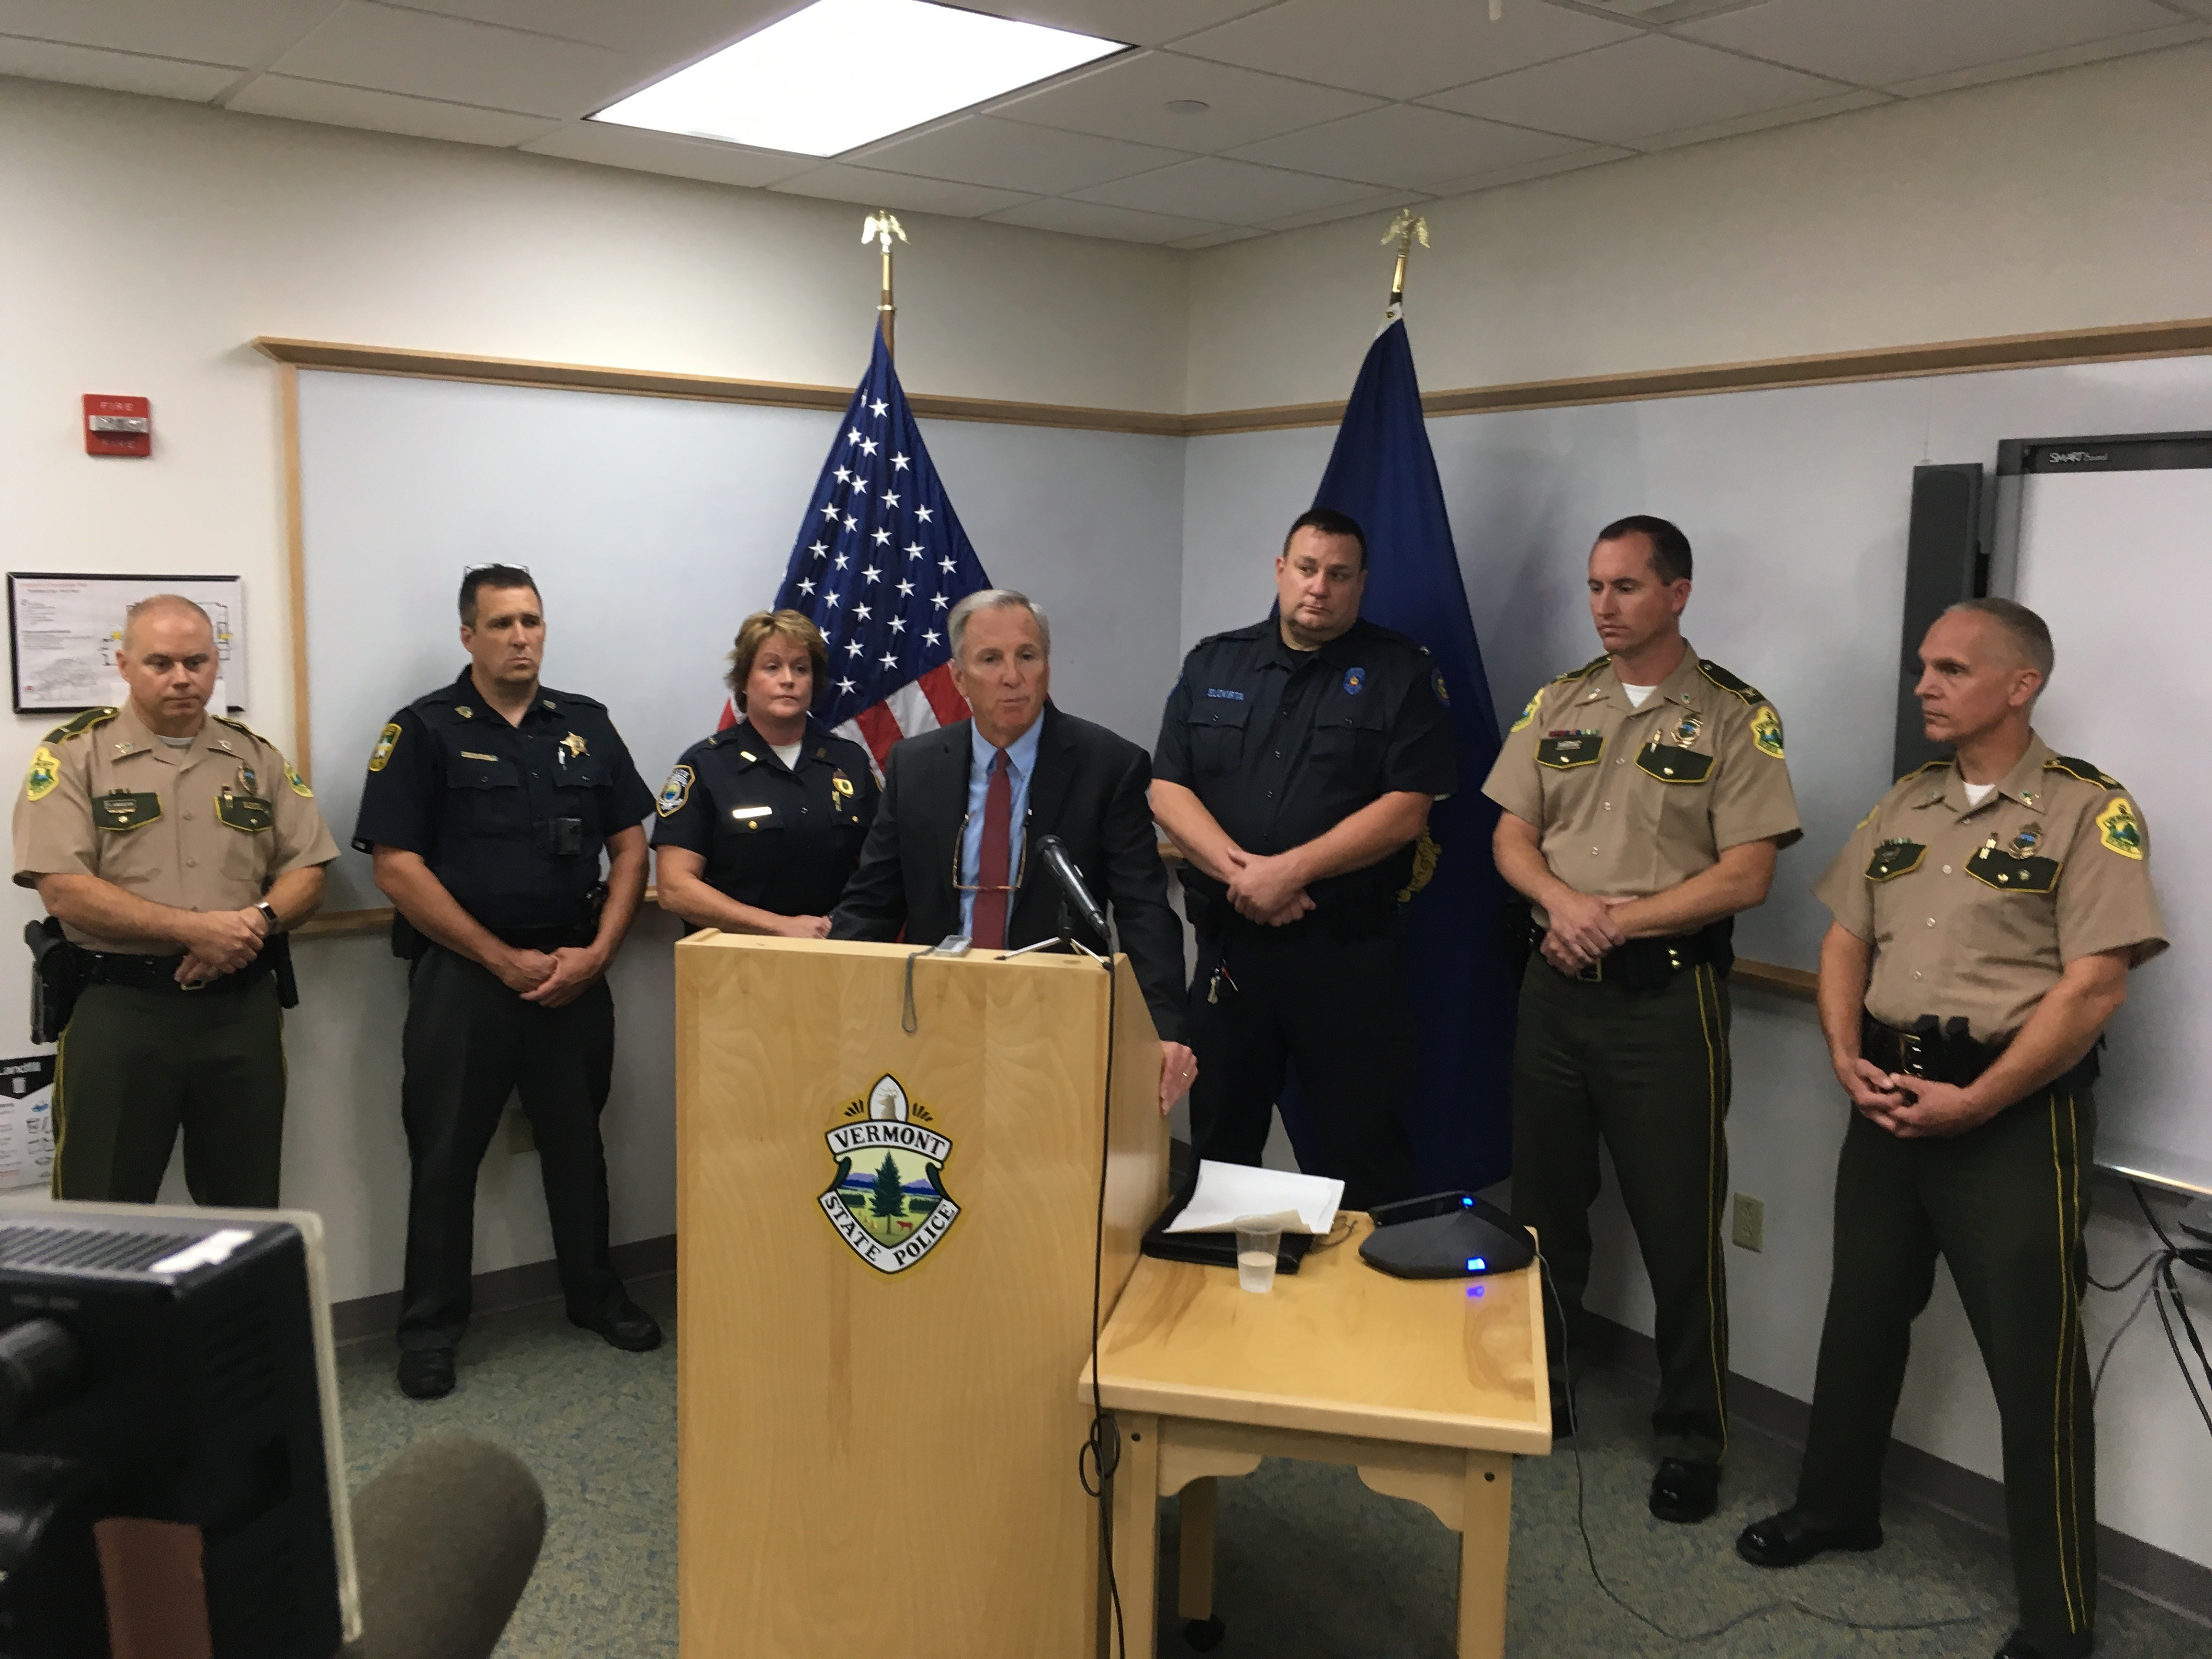 vermont state police press release